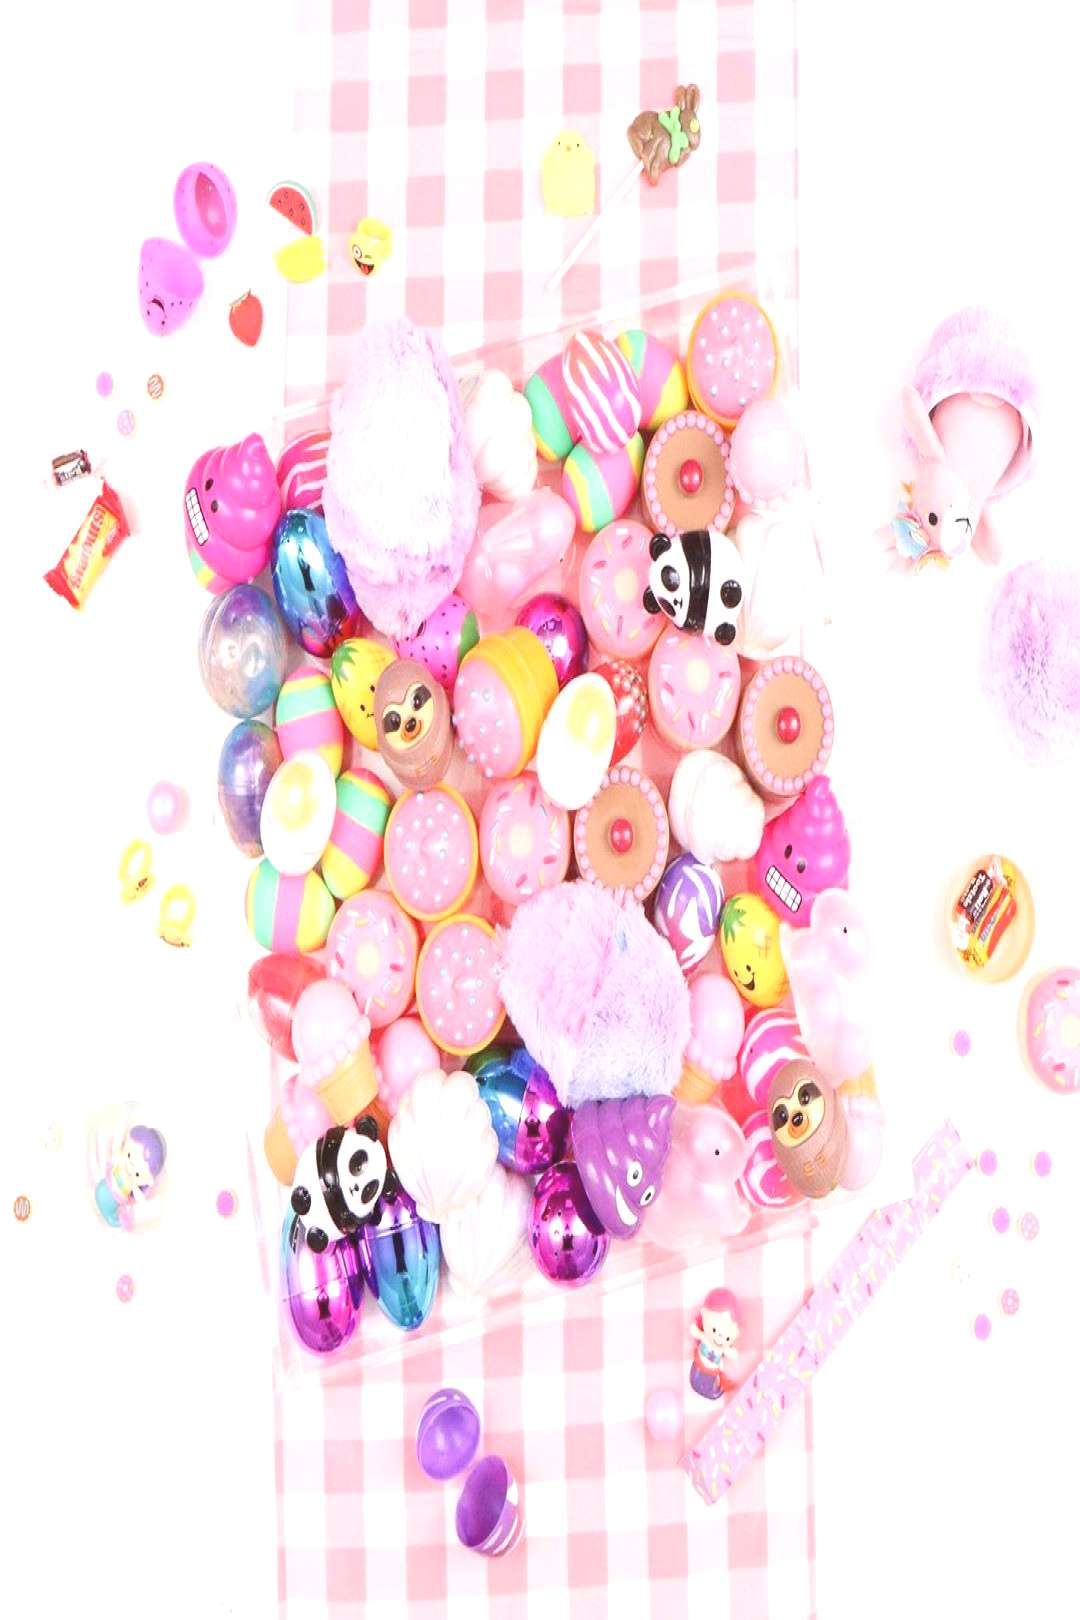 My love of candy treat boards is well known! With all the Easter